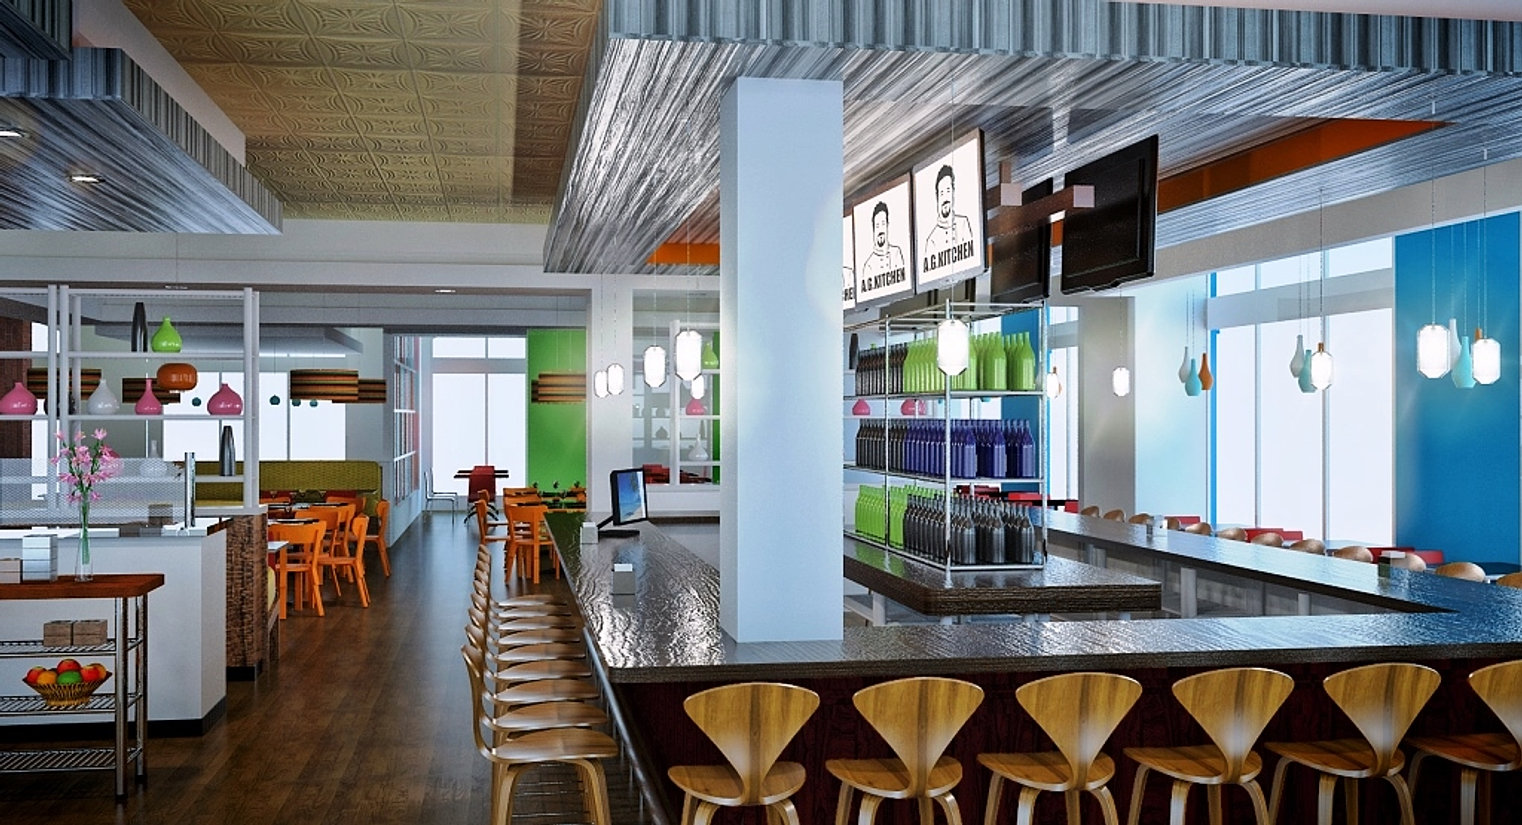 Franchise architects in house engineering interior design for Silver spring italian kitchen